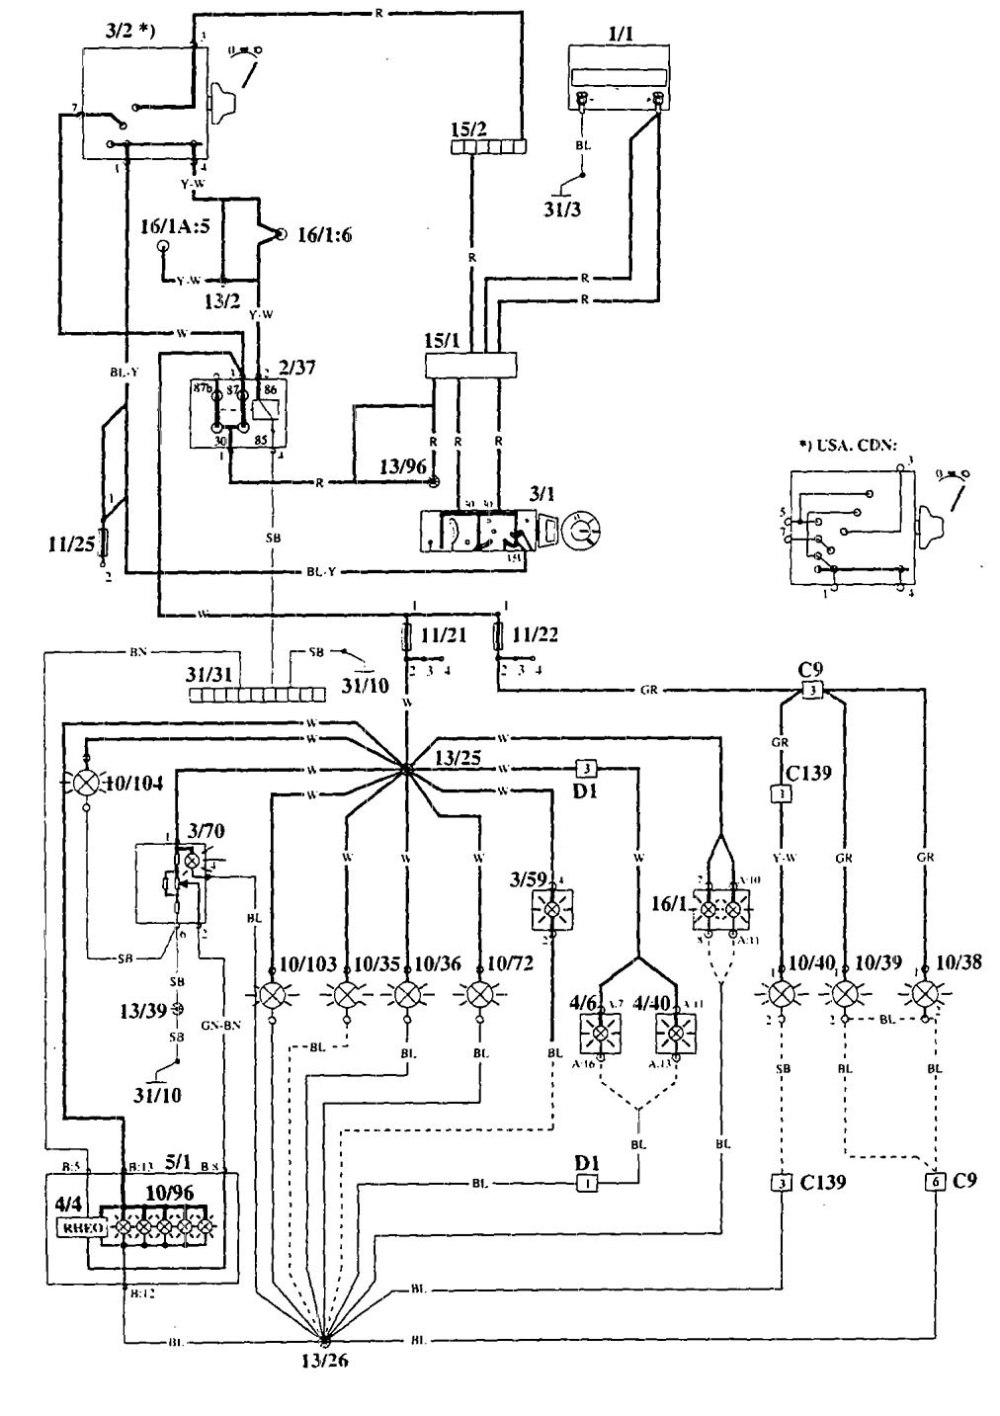 medium resolution of volvo 940 radio wiring diagram electrical diagram schematics 1993 960 wiring diagram 1995 volvo 940